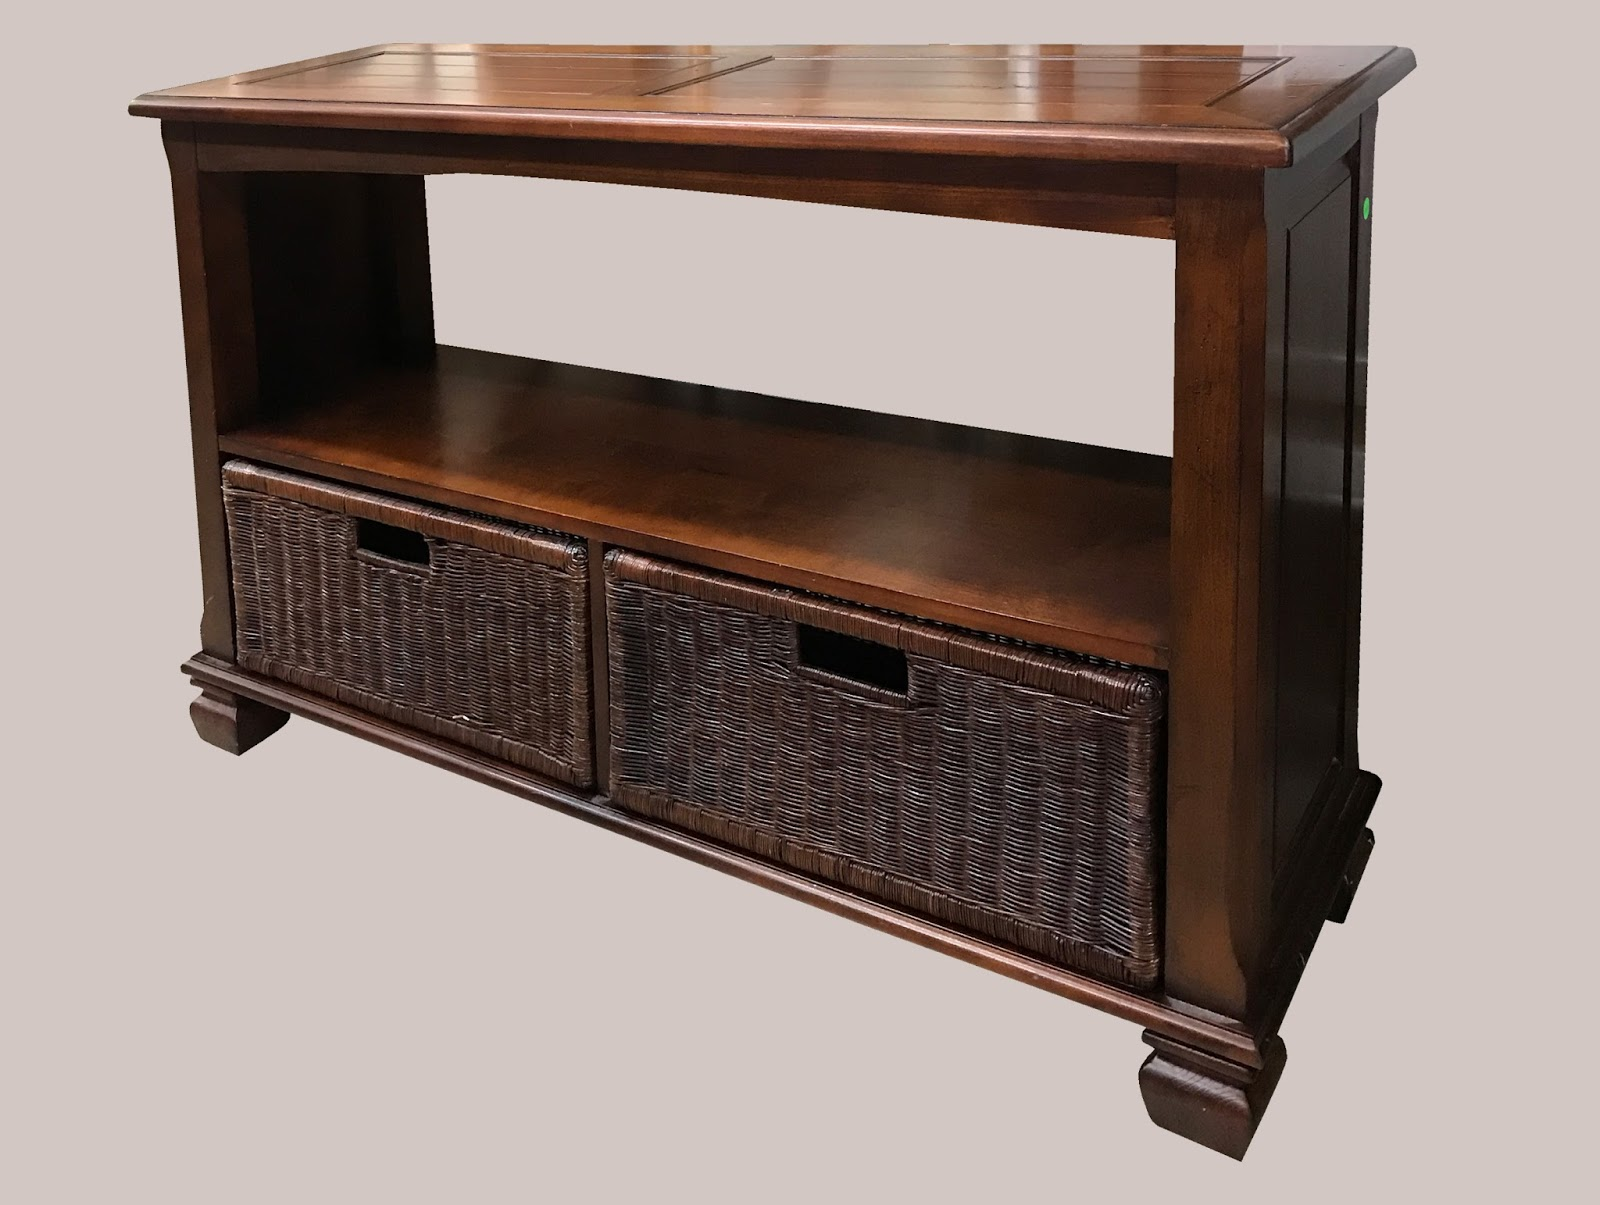 Sofa Table Storage Baskets Buy Set Online Uhuru Furniture And Collectibles With Basket